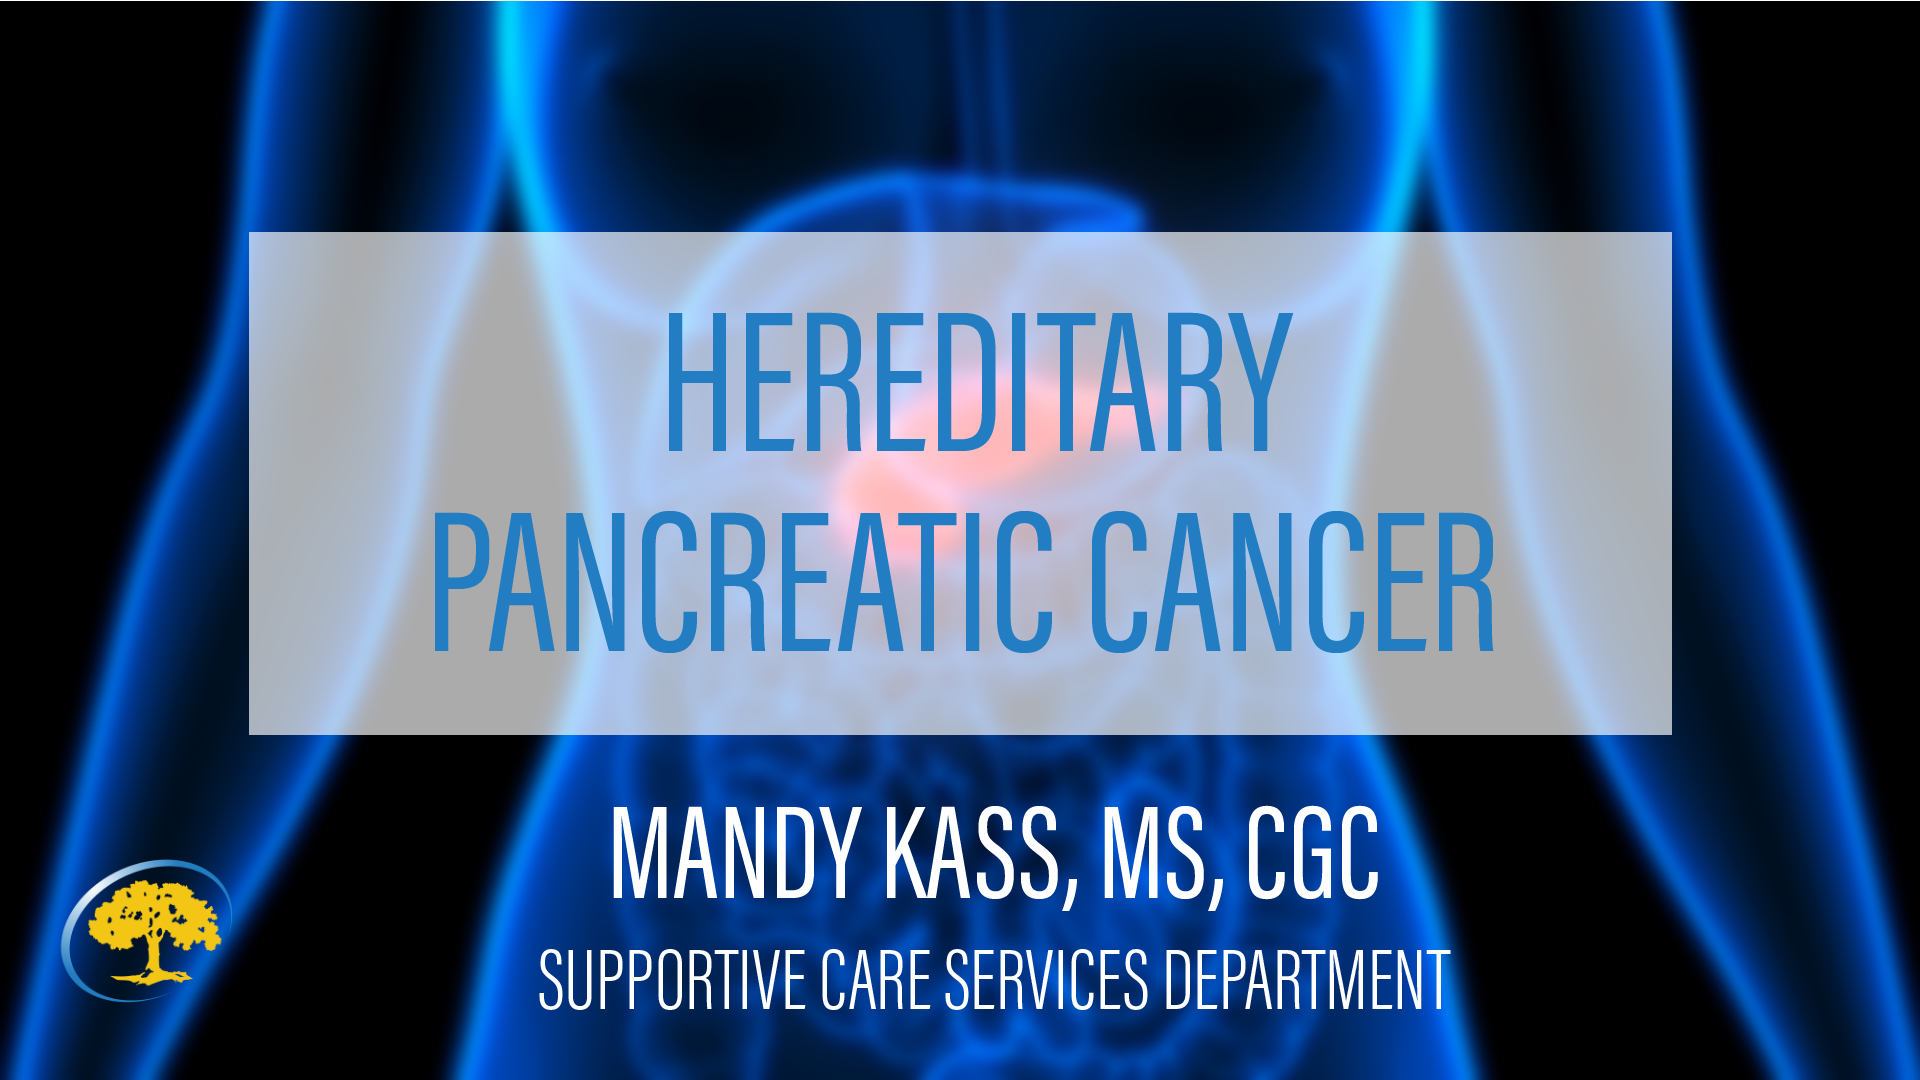 Hereditary Pancreatic Cancer